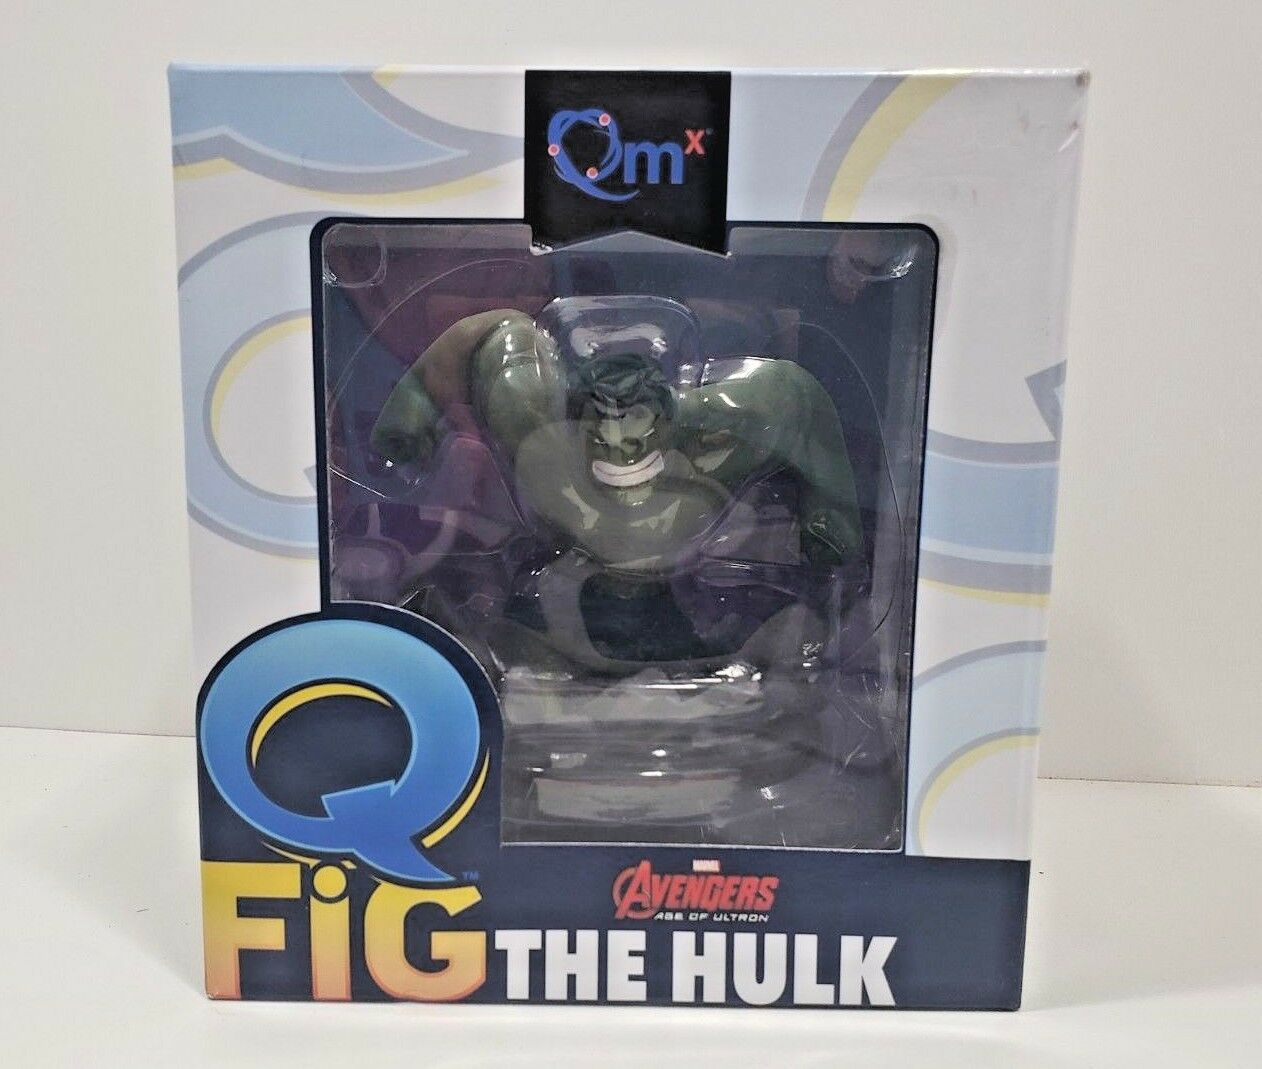 The Hulk QMX Q Fig, Marvel Avengers Age of Ultron, New Open box